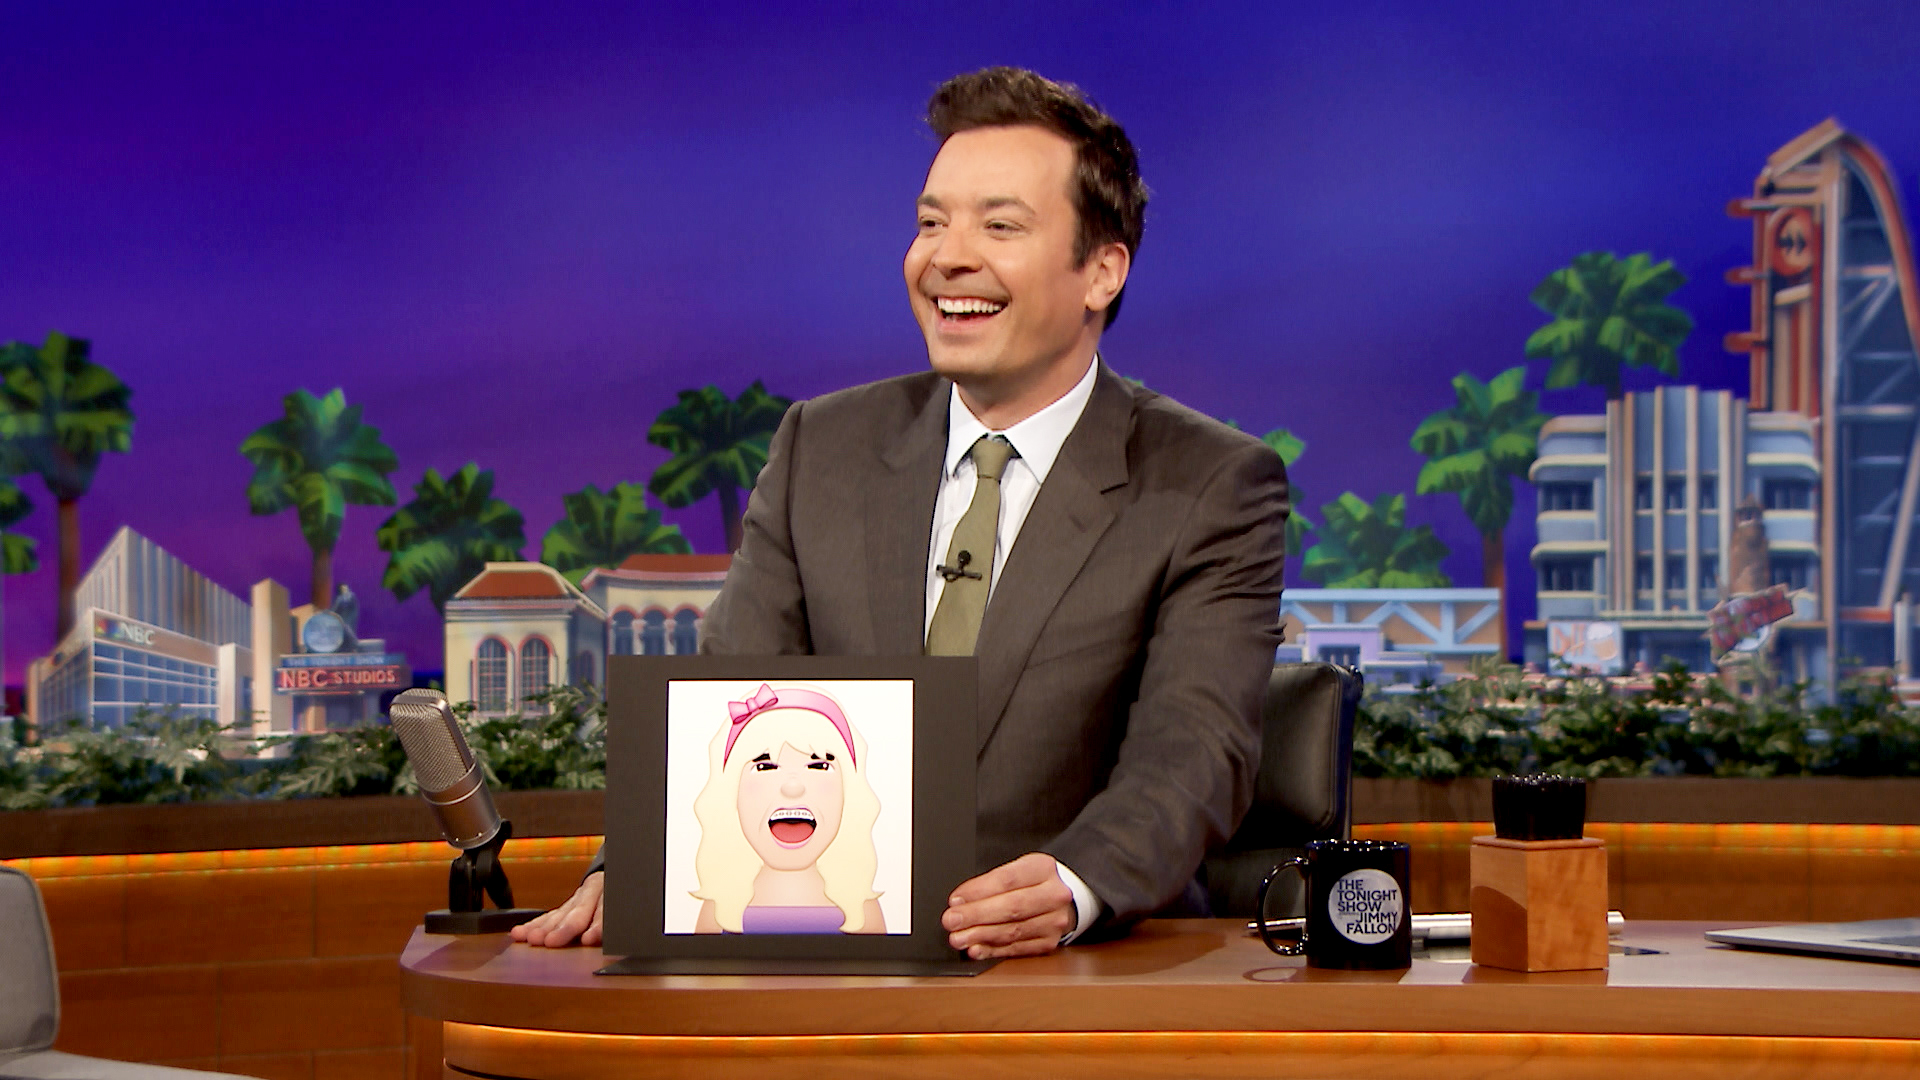 Http Www Nbc Com The Tonight Show Video Jimmy Fallon Announces Jimoji Emoji Stickers 3497274